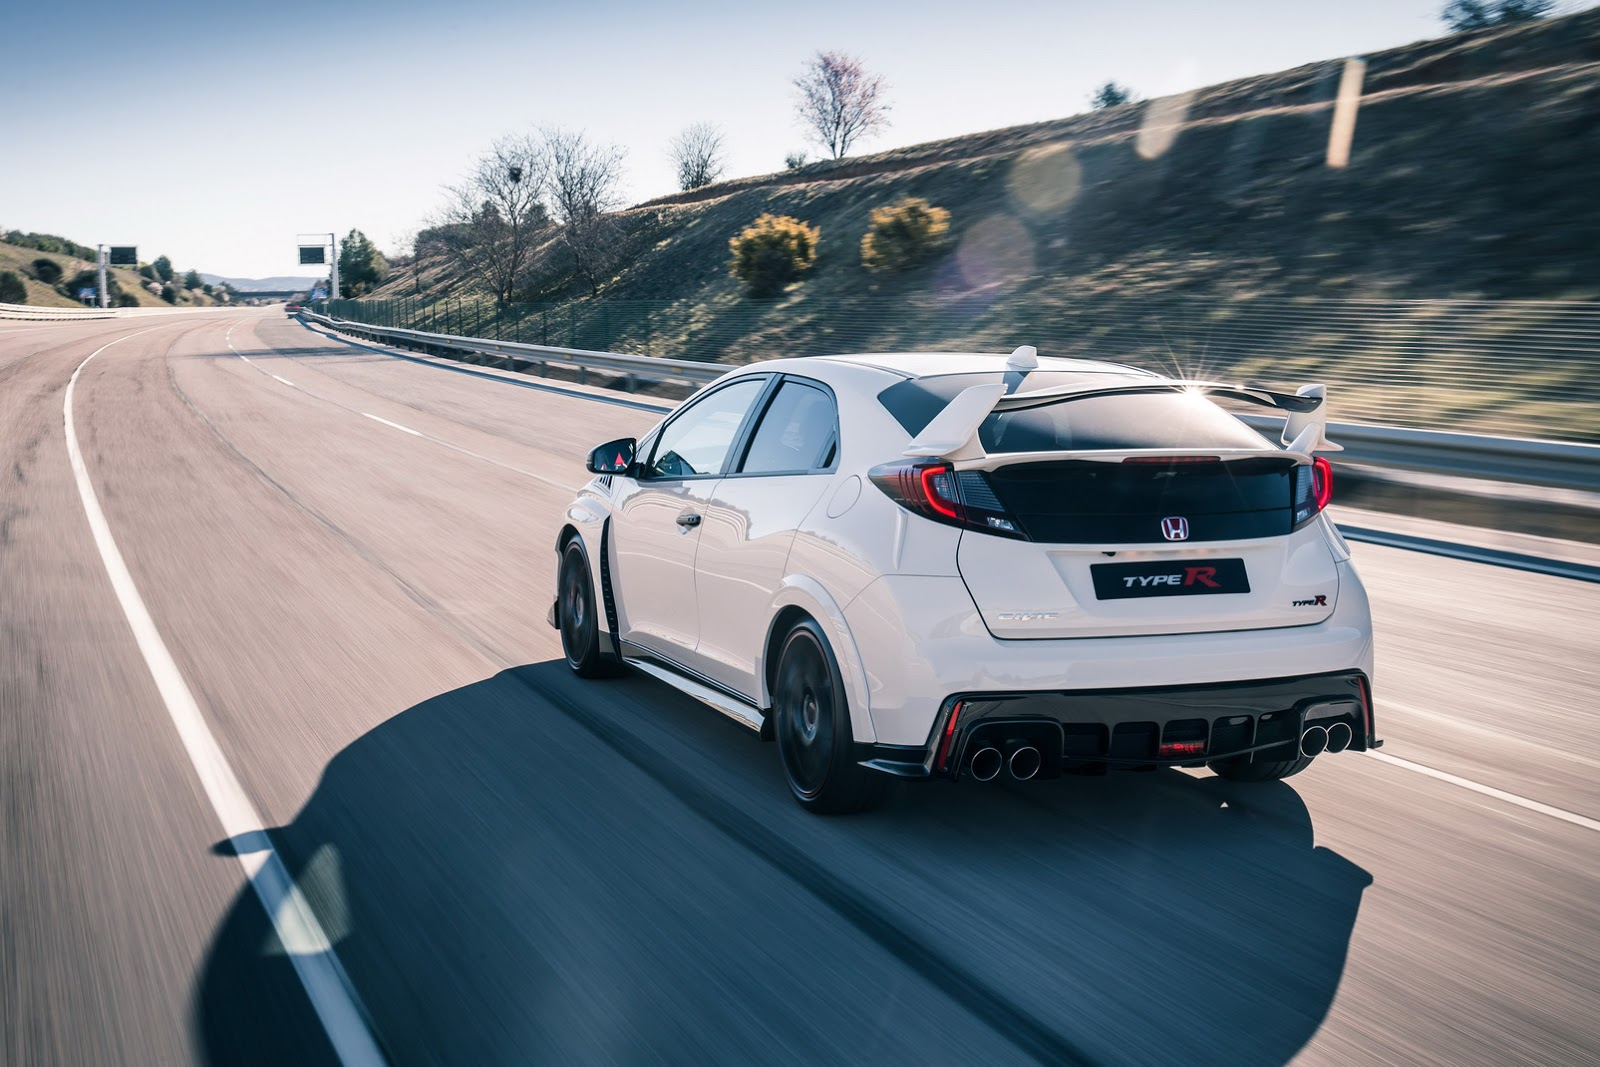 2016 Honda Civic Type R Leaves Us With Mixed Feelings